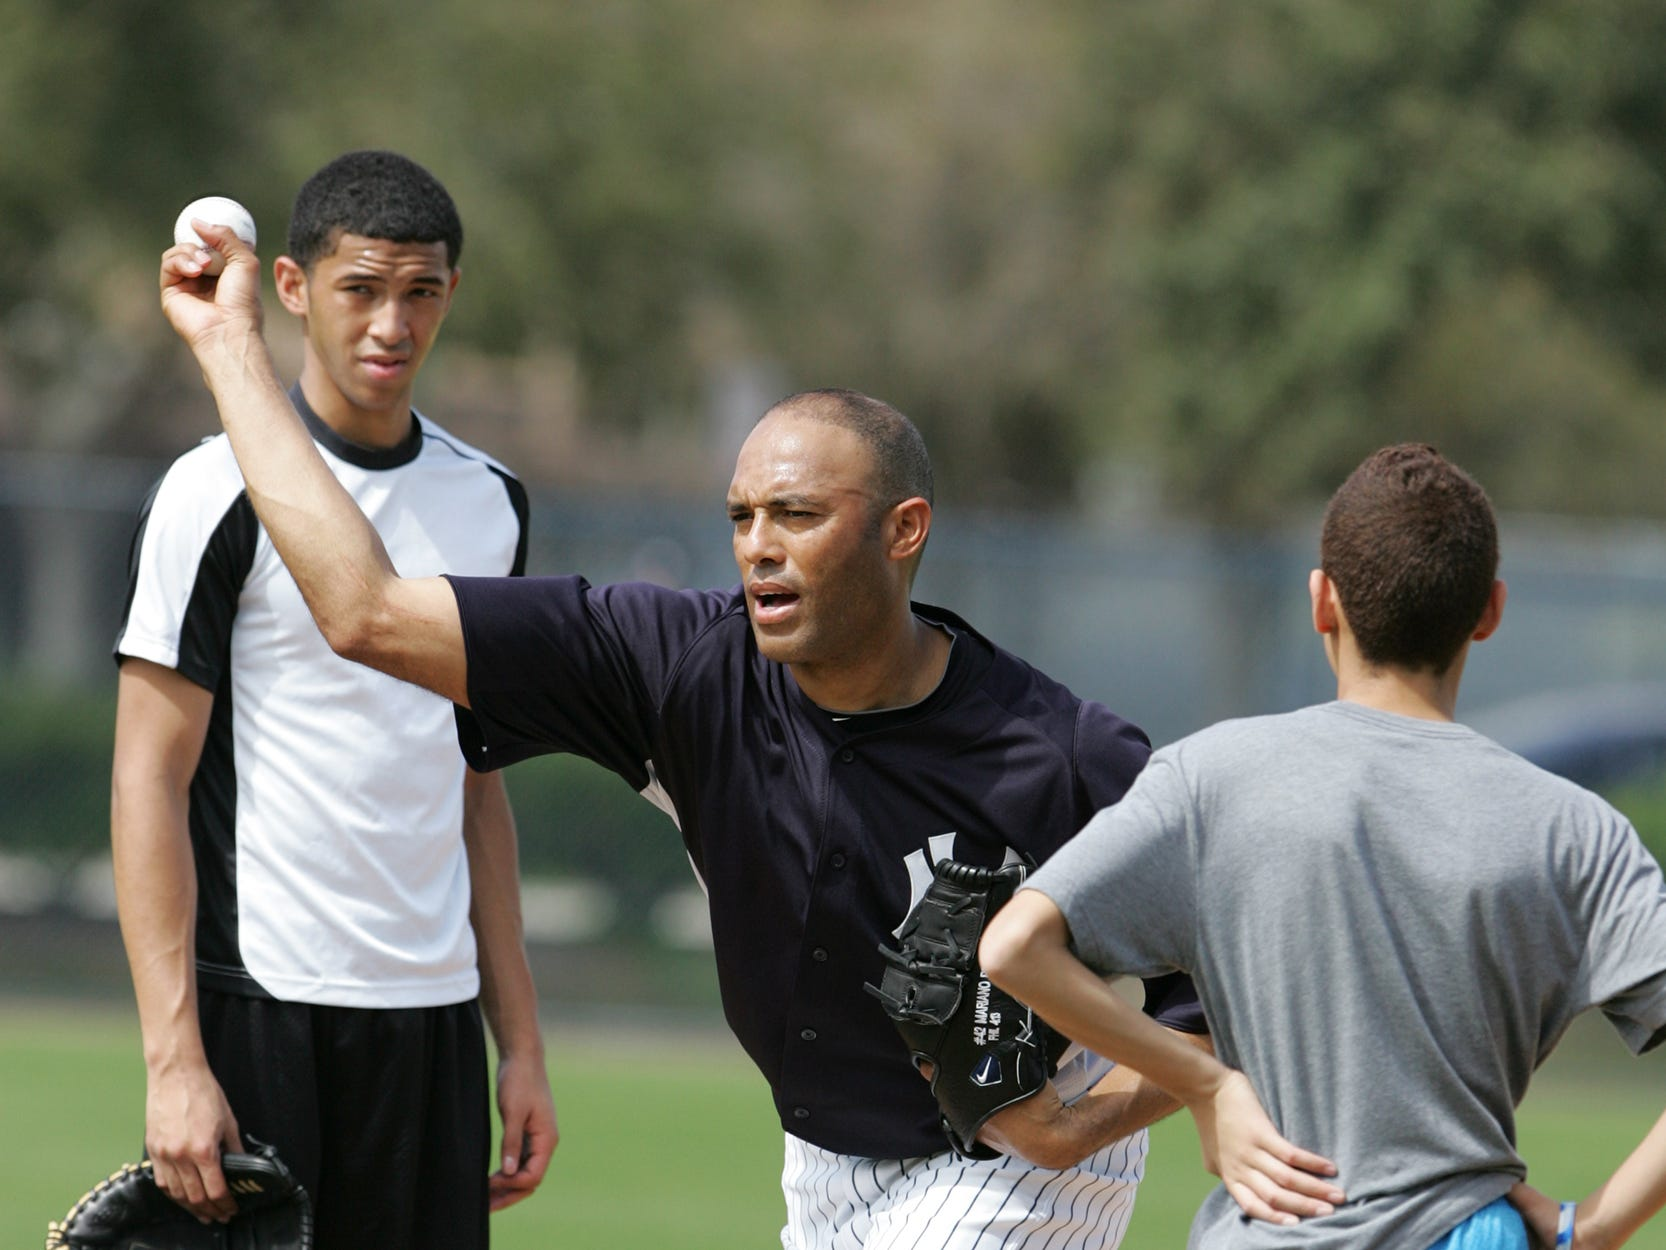 Yankees third full team workout for Spring Training at George M. Steinbrenner Field.   Mariano Rivera and his sons, Mariano Jr. and Jafet on the practice field as he gives his son, Mariano Jr. 16 pitching instructions after the Yankee workout.